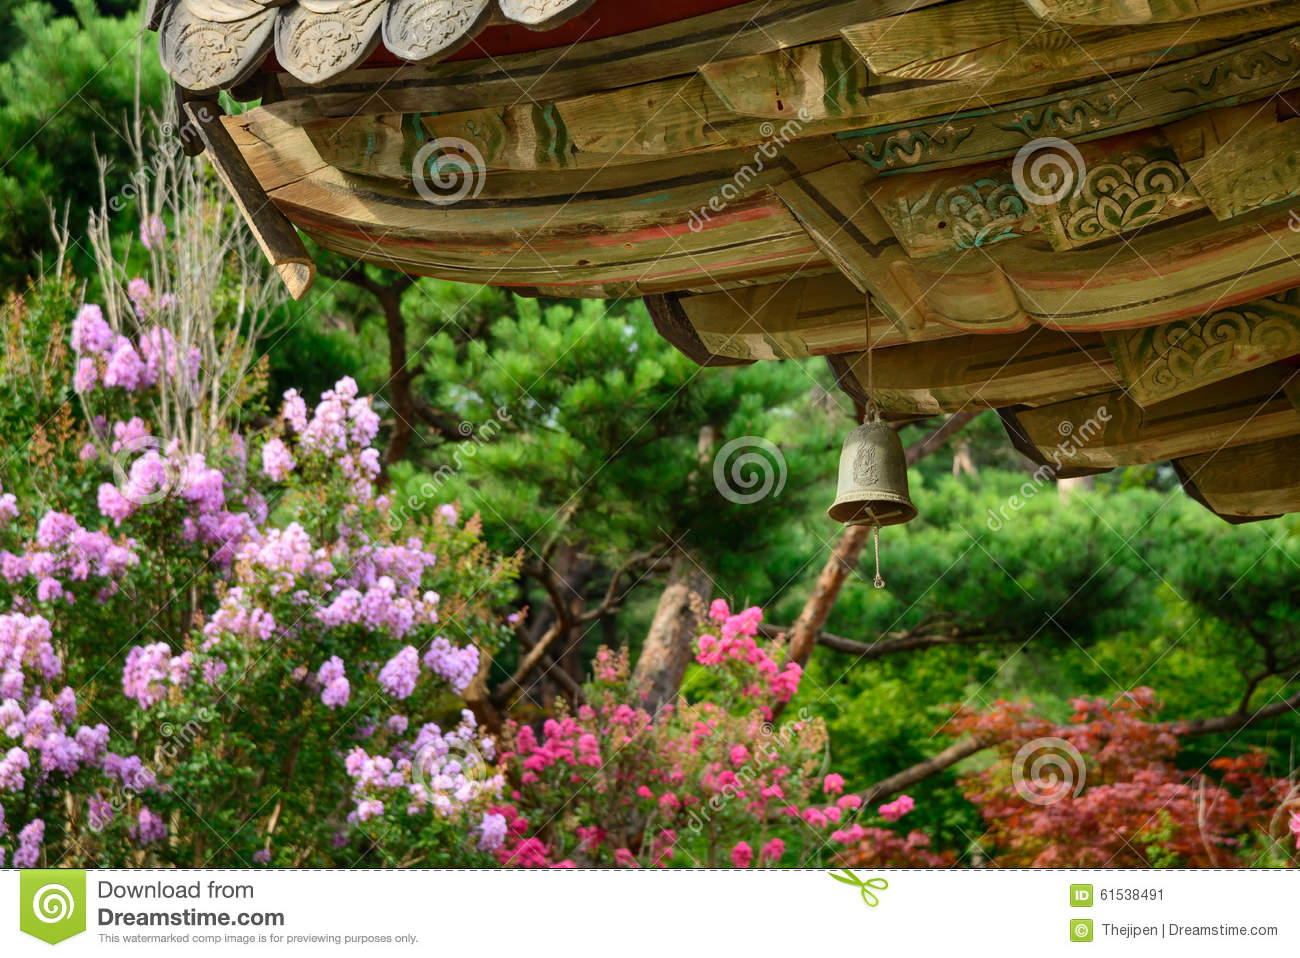 Wind chime under the eaves stock image  Image of sound